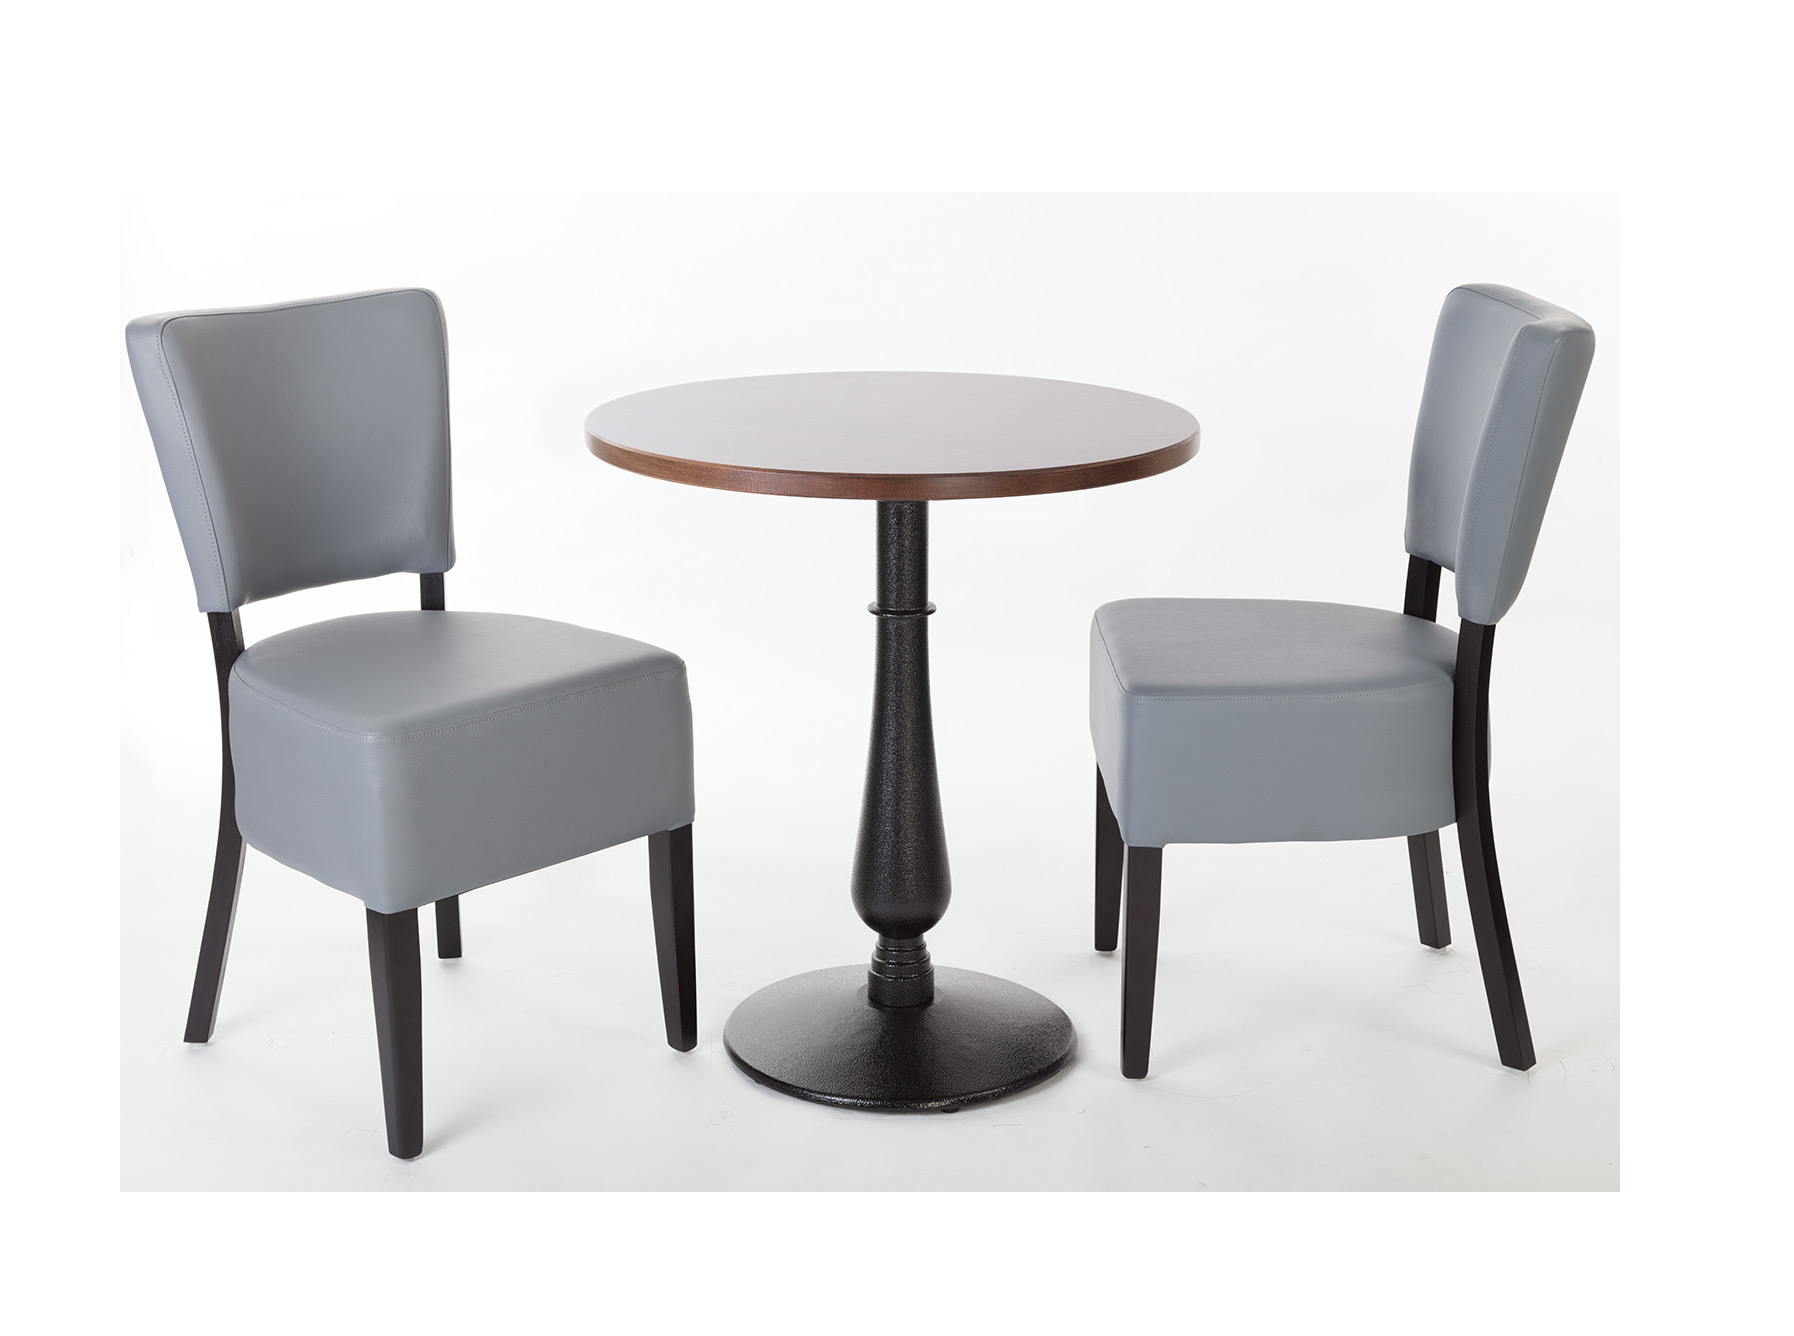 View Contract Furniture Sets category